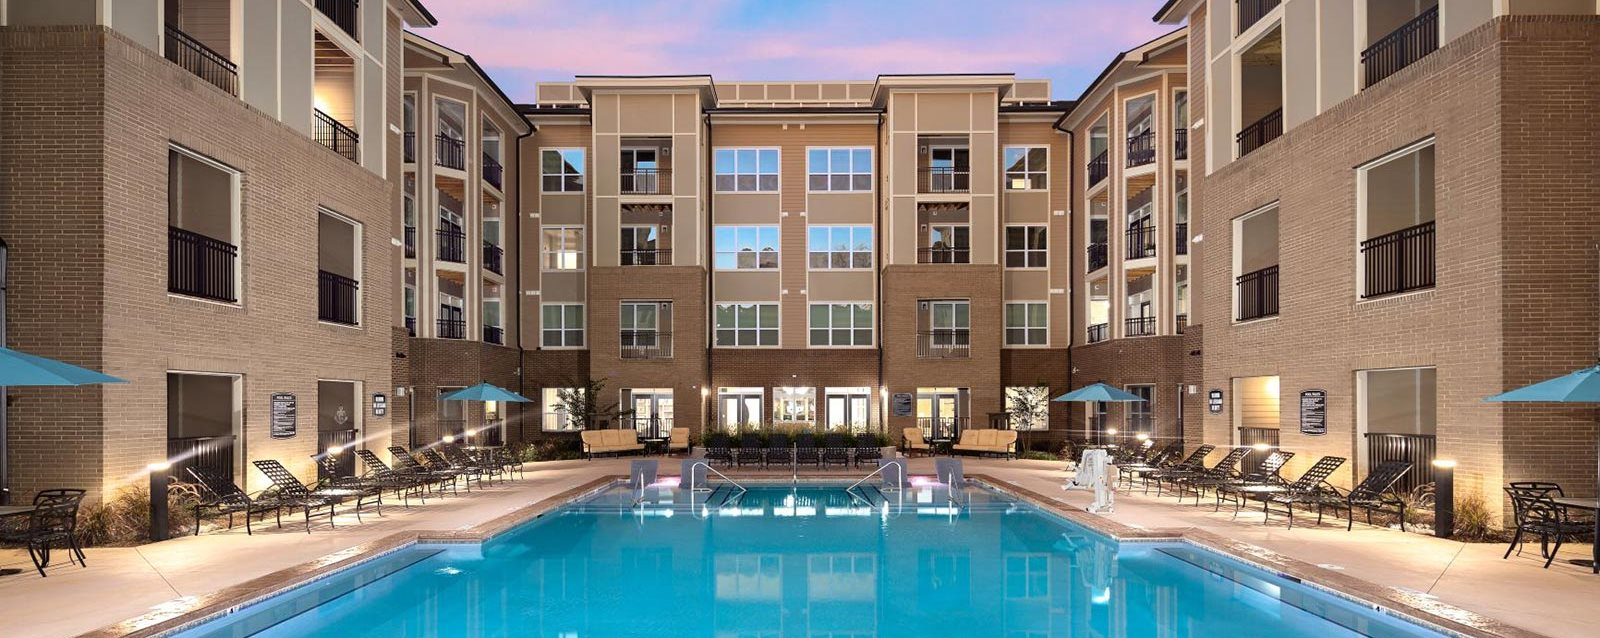 Invigorating Swimming Pool at Abberly Solaire Apartment Homes, Garner, NC